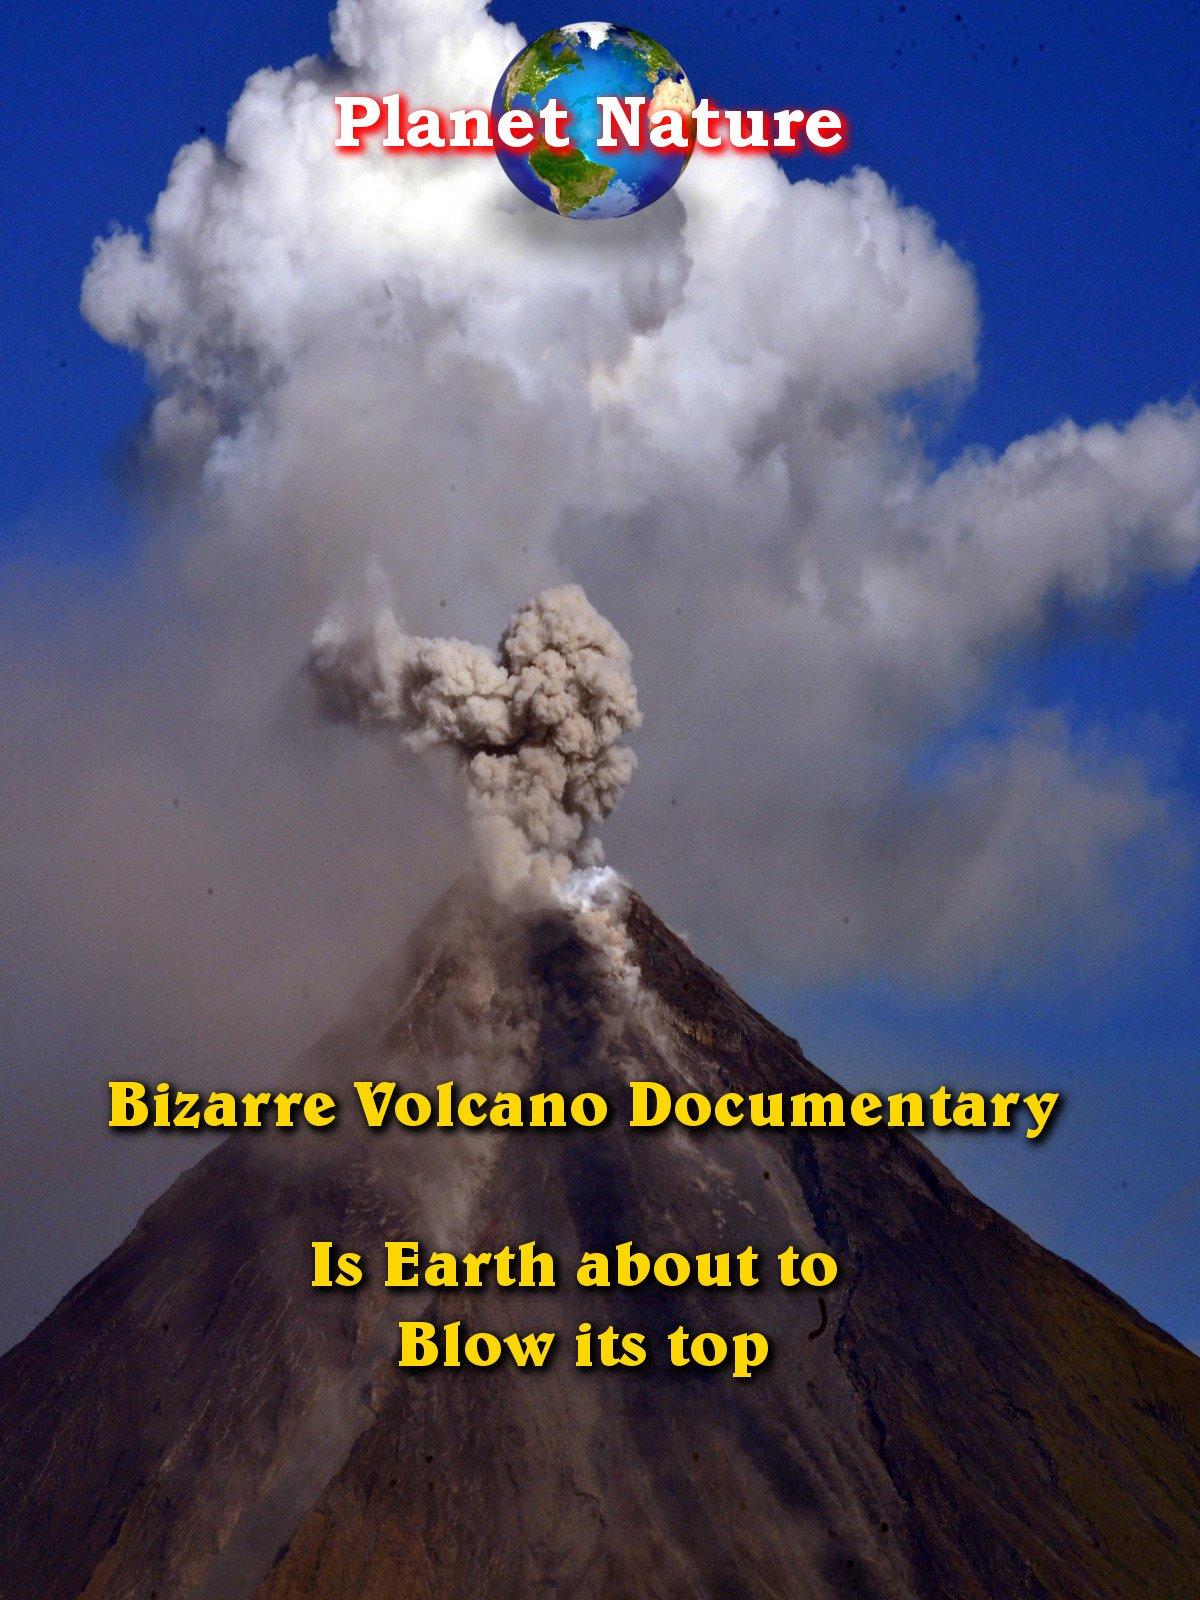 Bizarre Volcano Documentary - Is Earth About to Blow it's Top